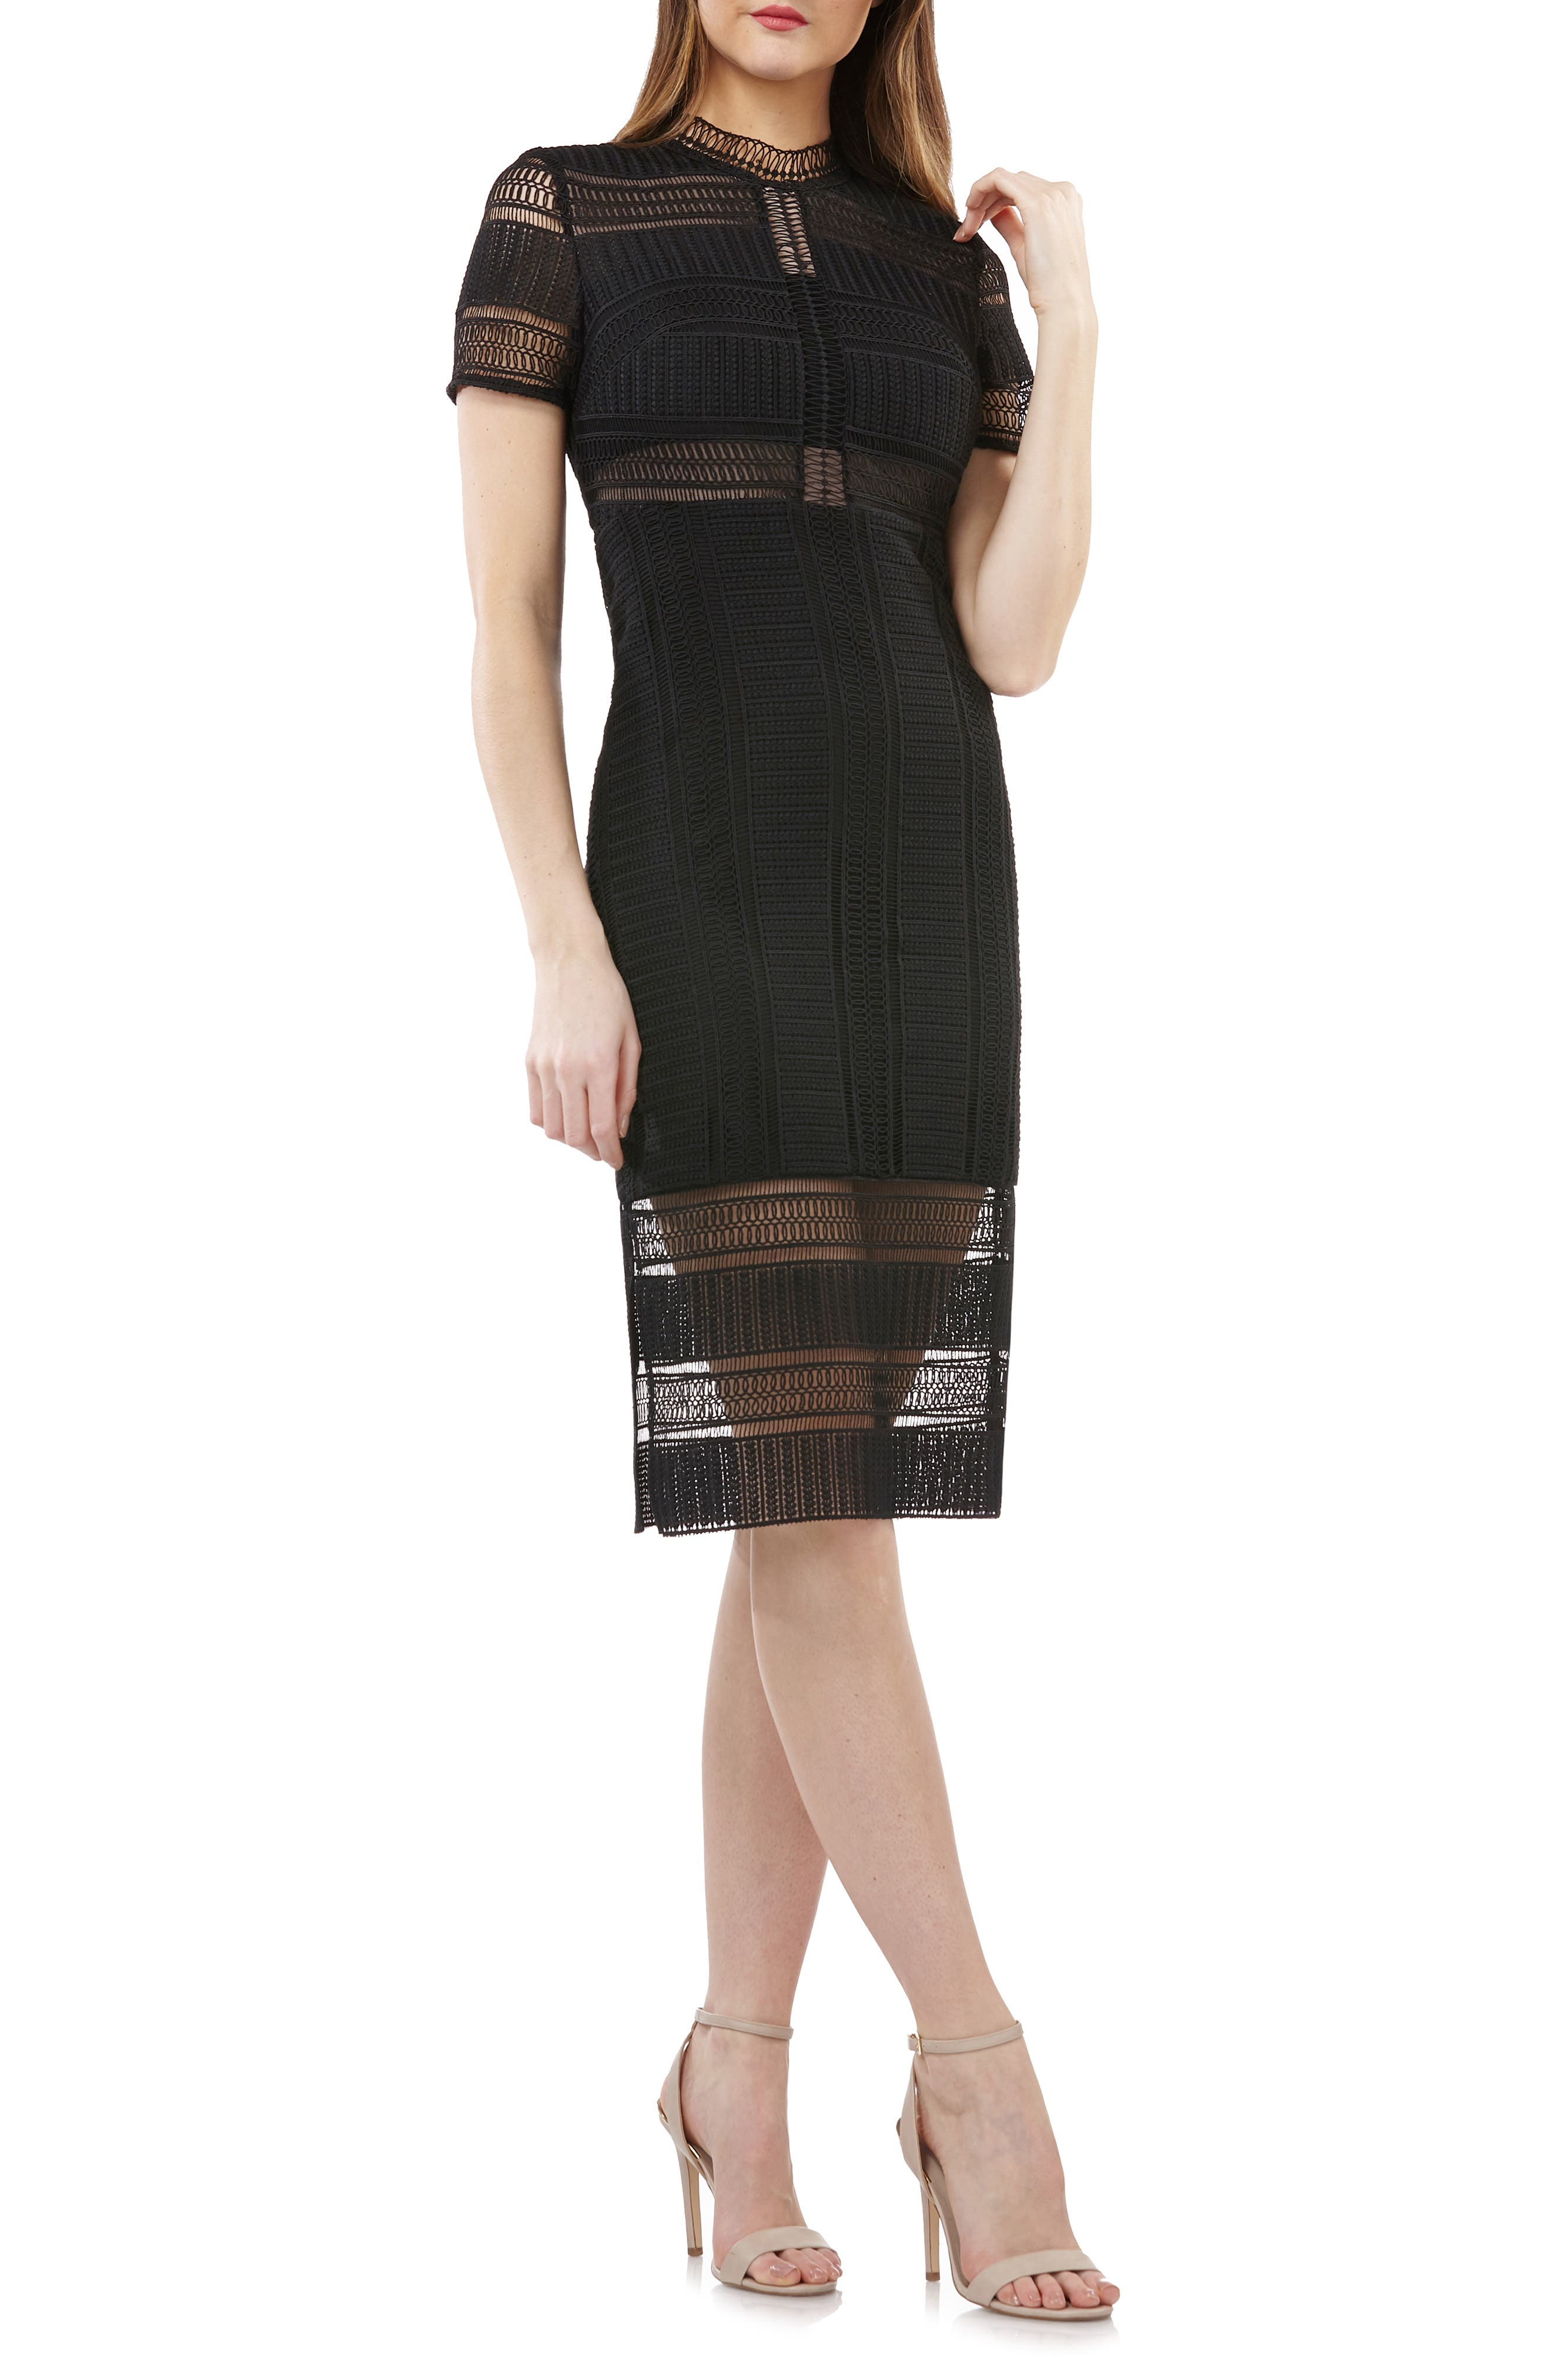 Js Collections Graphic Lace Body-Con Cocktail Dress, Black